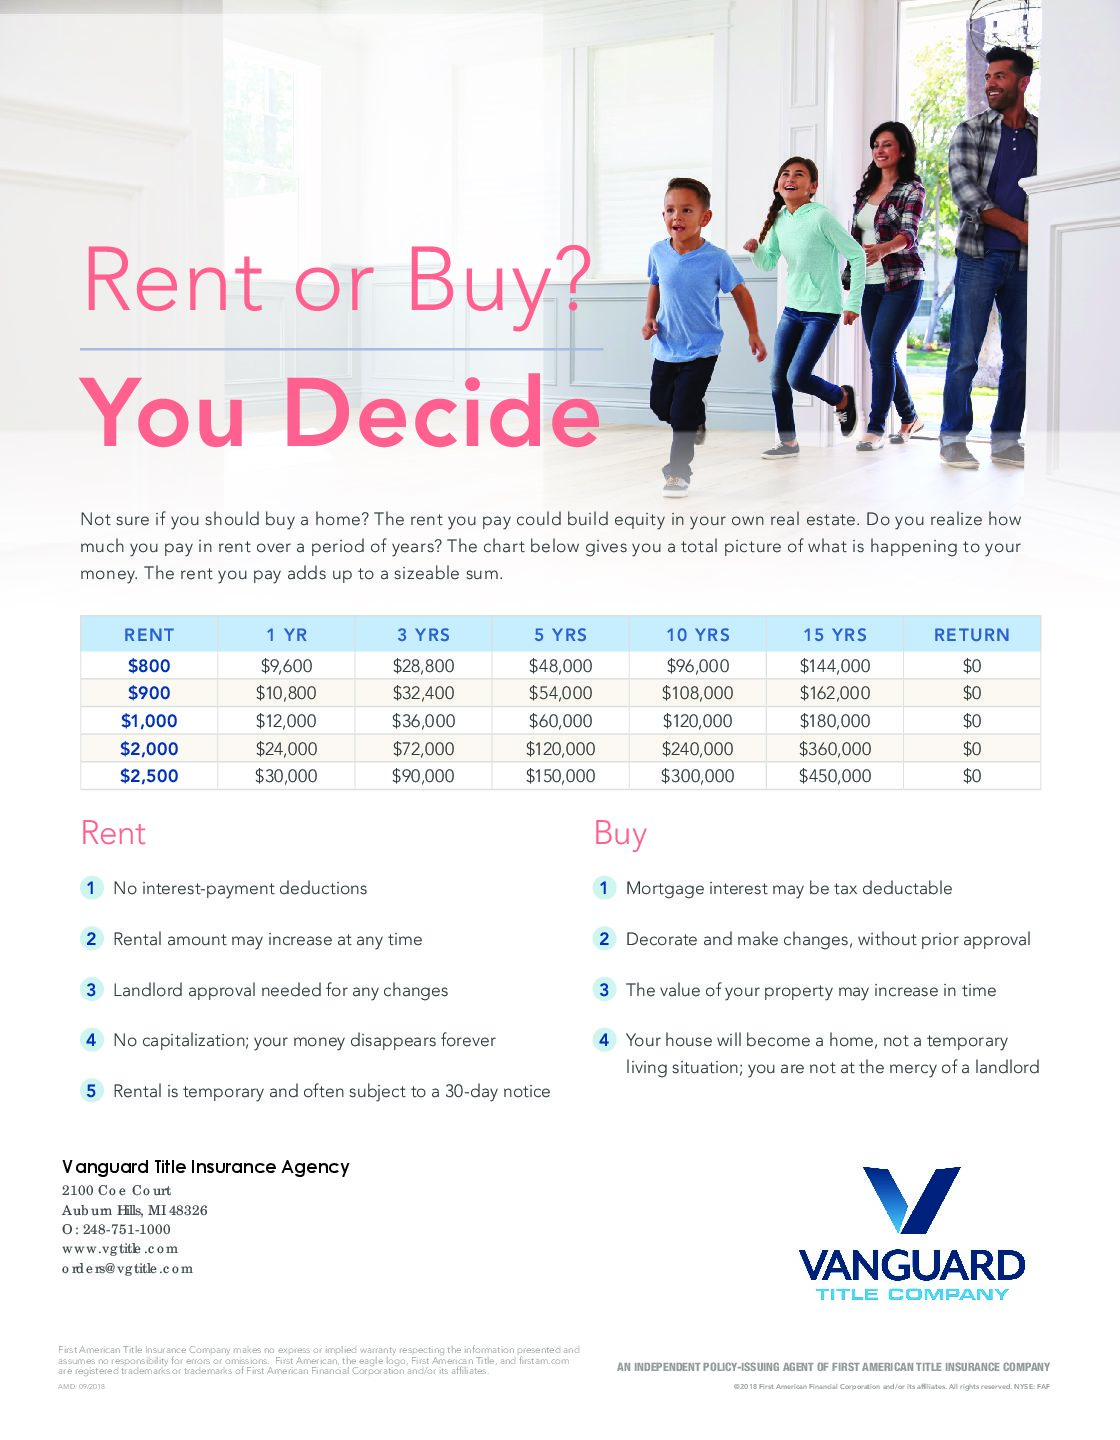 Helpful Statistics For The Rent or Buy Dilemma